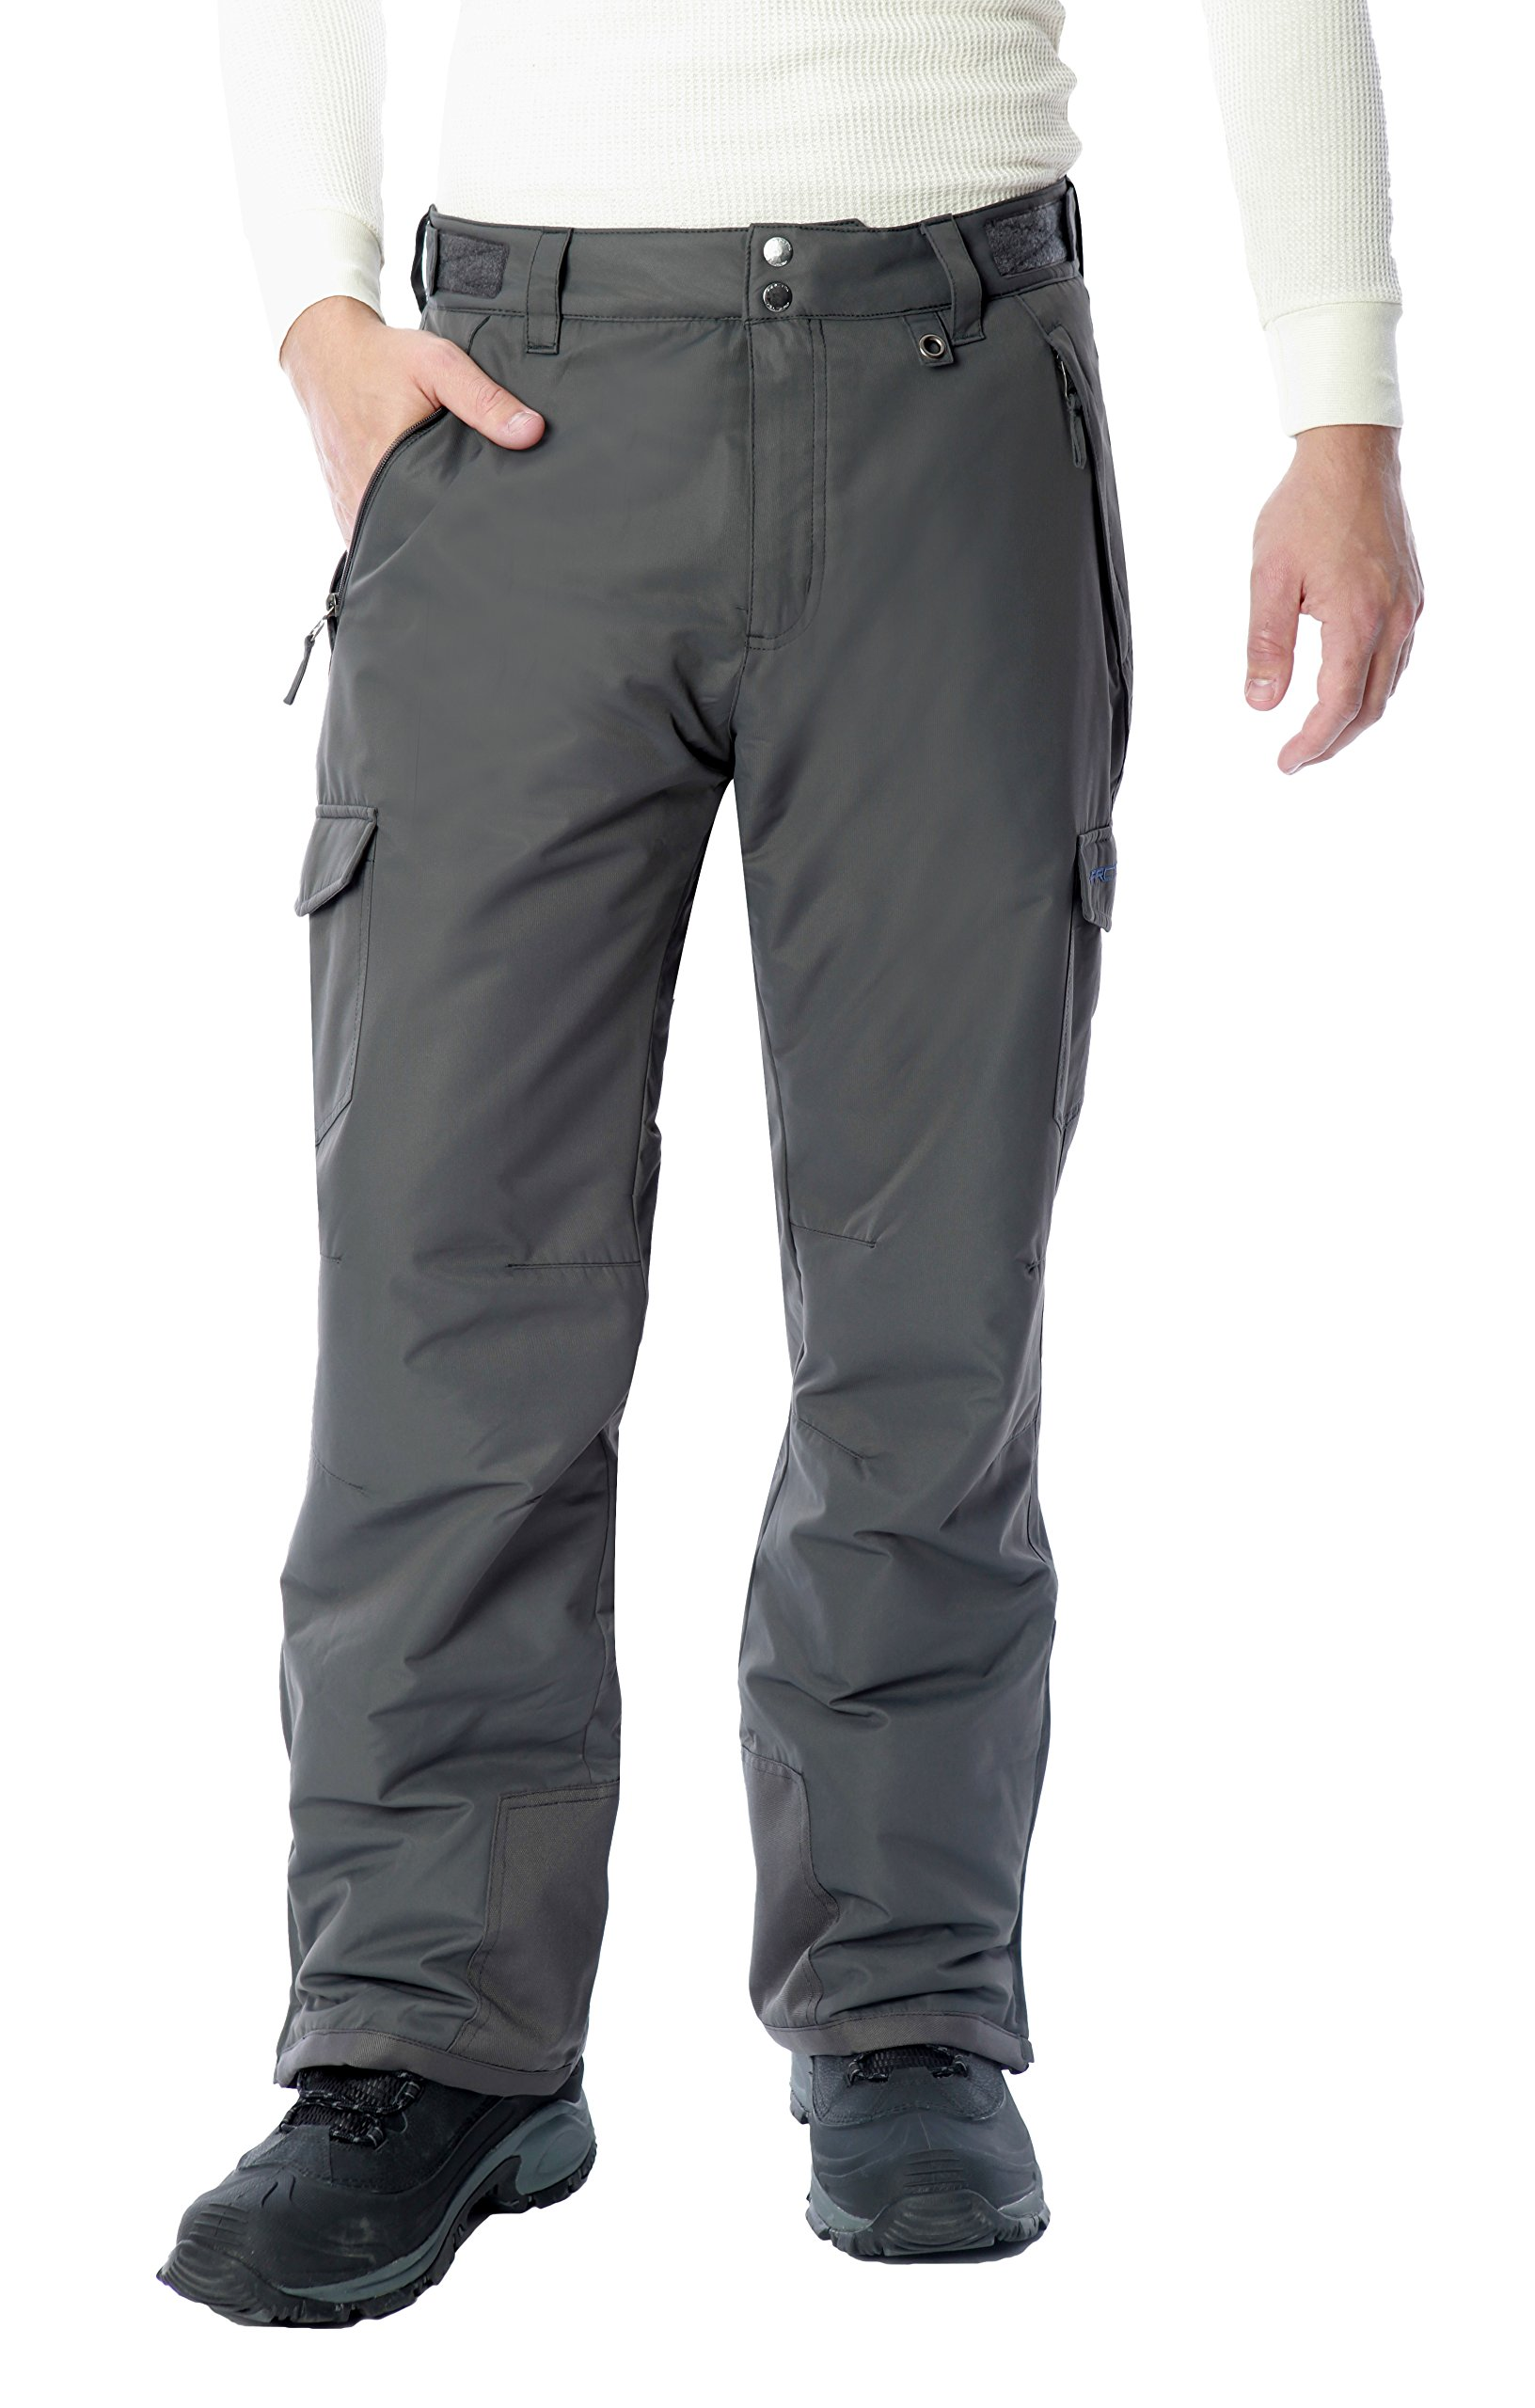 Arctix Men's Snow Sports Cargo Pants, Charcoal, Large/Regular by Arctix